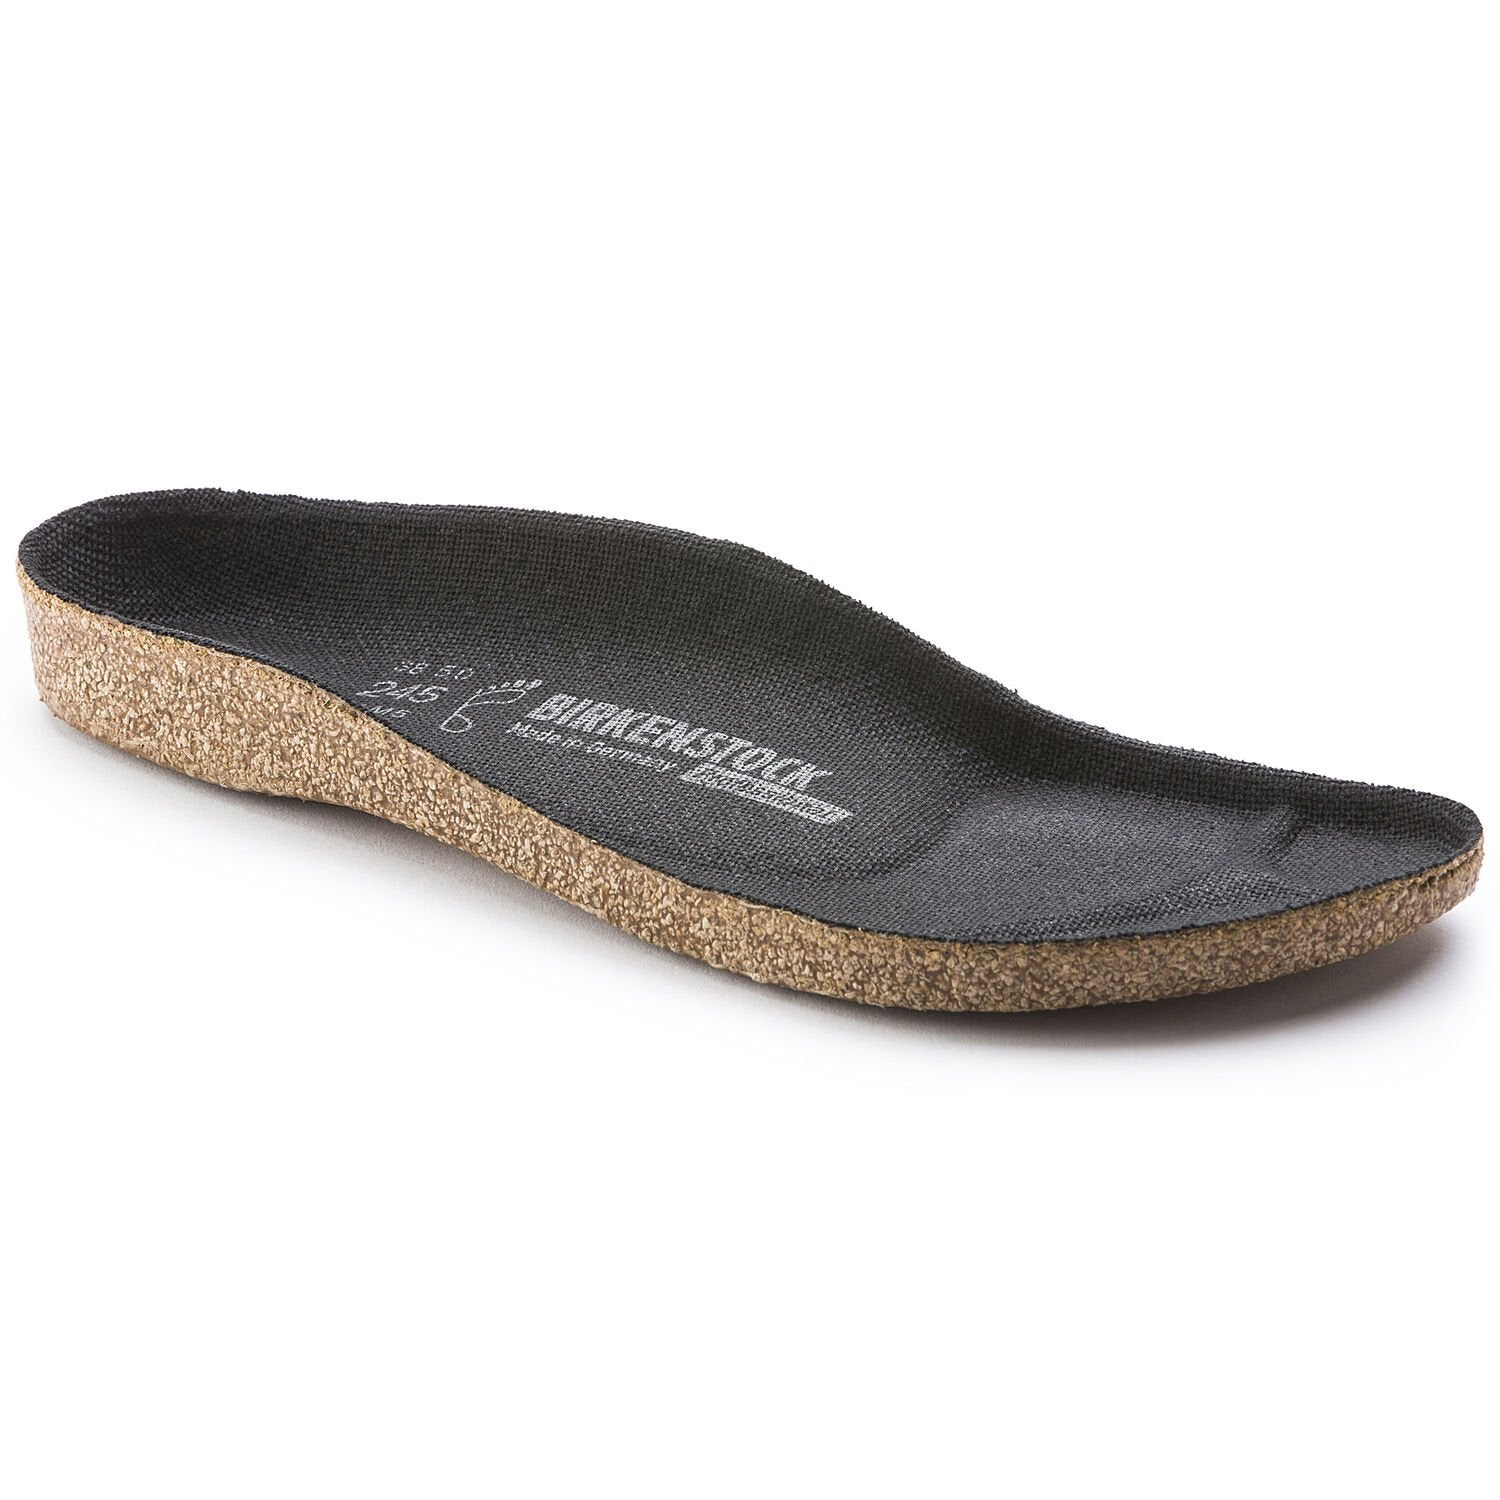 Birkenstock Super-Birki Replacement Footbed 1201127 Semelle Orthopédique - Boutique du Cordonnier